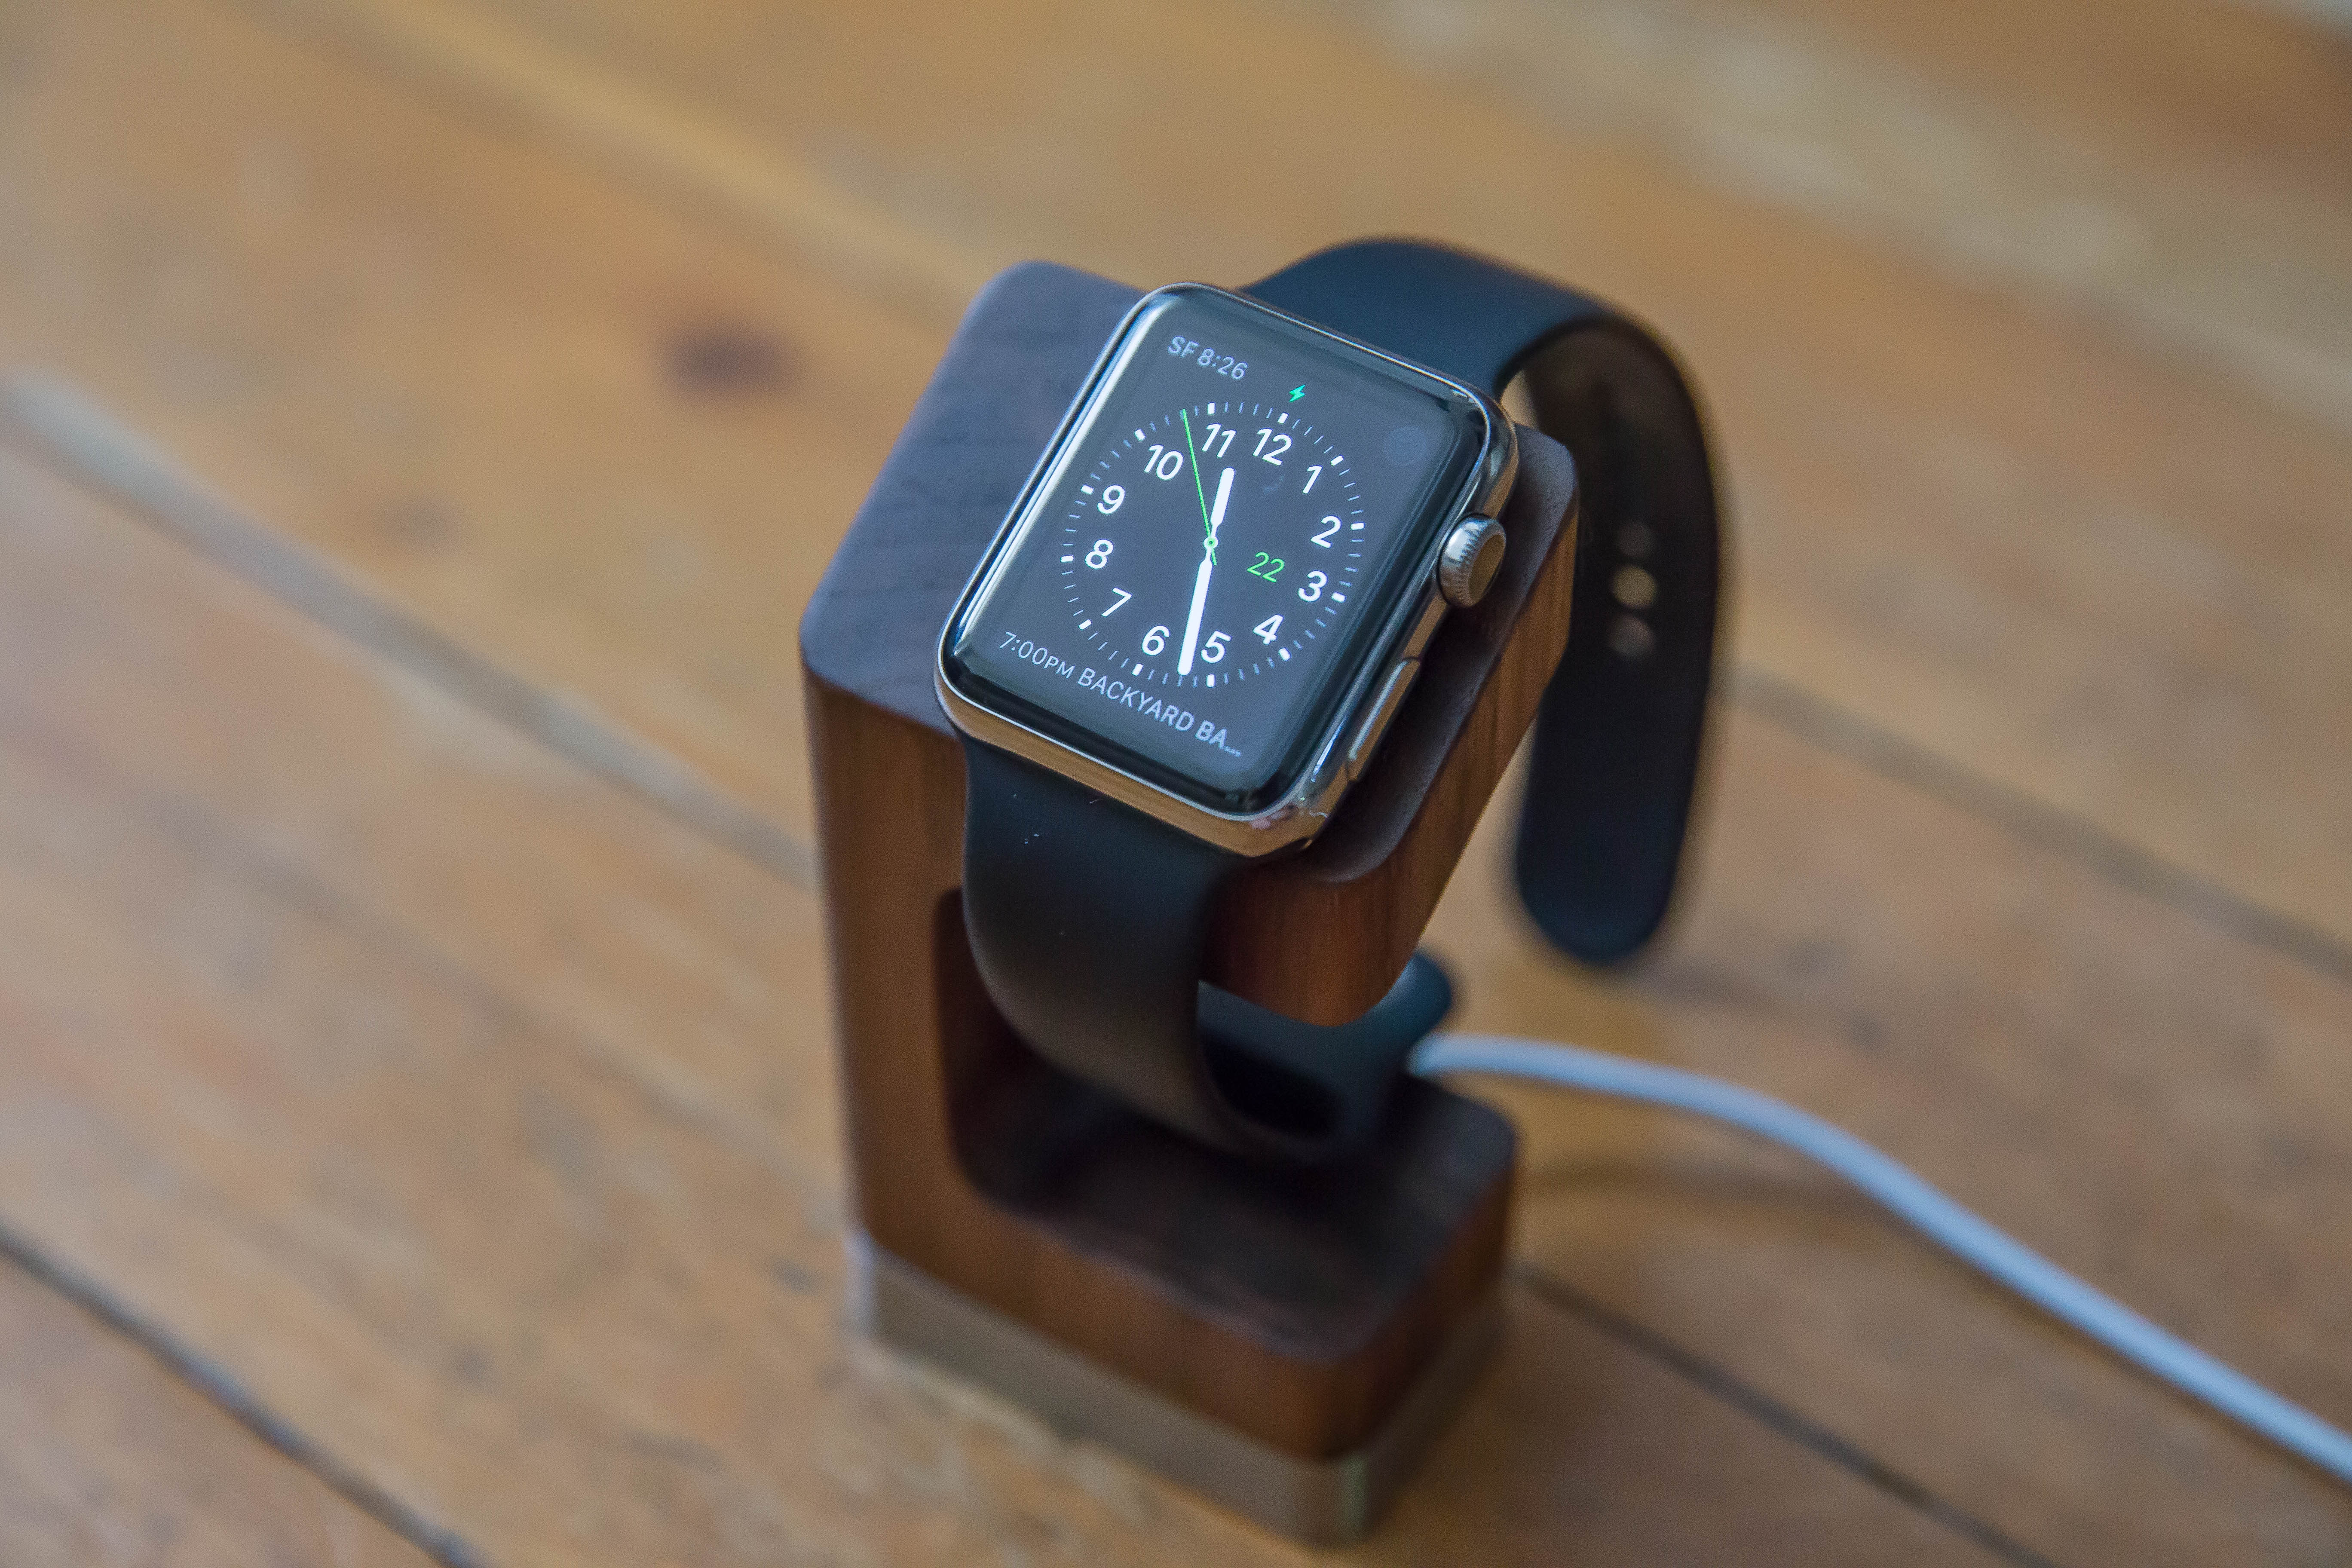 DODOcase's Apple Watch Accessories Have You Covered At Home And Away